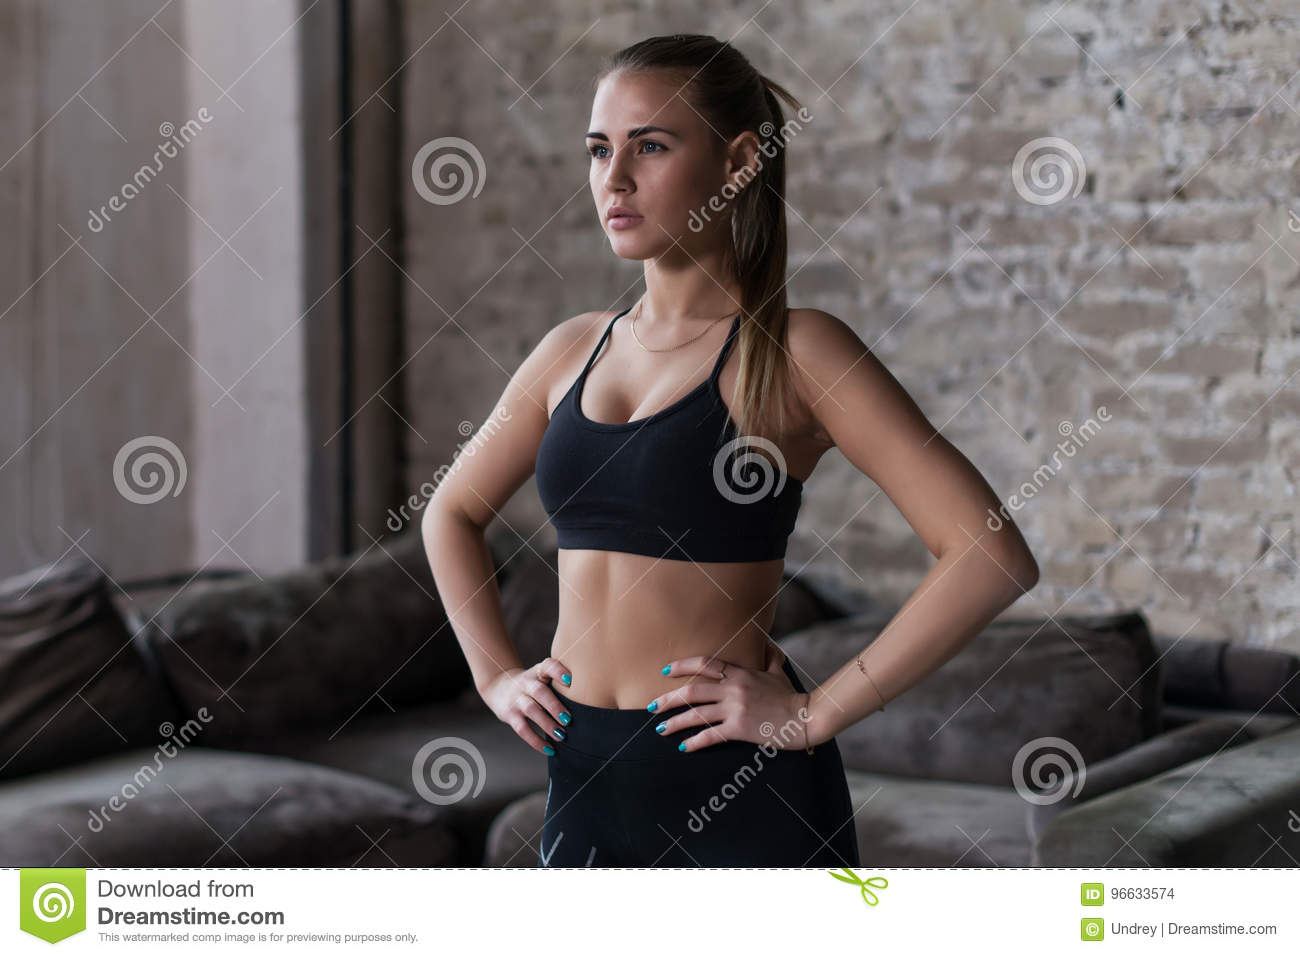 Fit female model in black sportswear with pony tail posing in loft interior looking away from camera